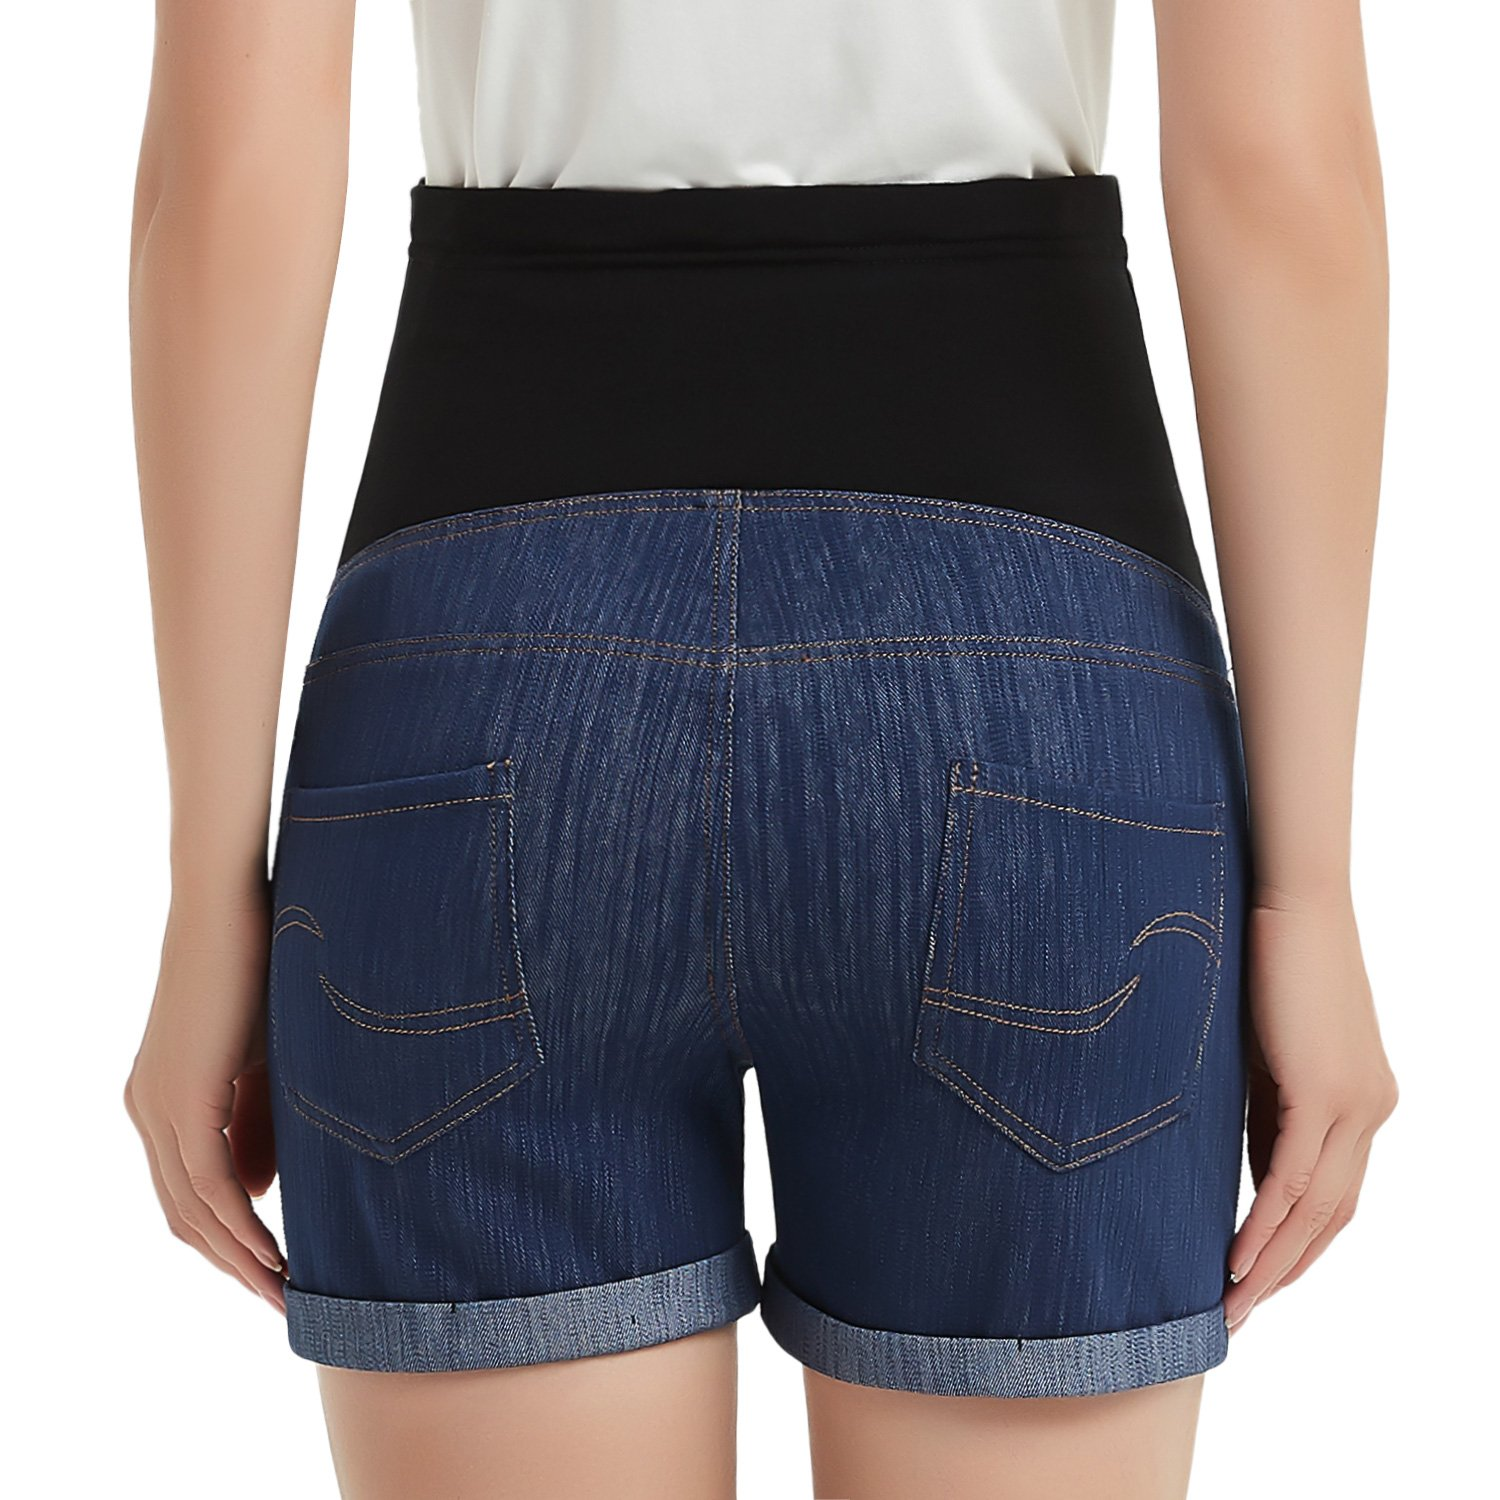 GINKANA High Waist Maternity Denim Shorts Cotton Summer Over Belly Pregnancy Shorts Linen Pants by GINKANA (Image #2)